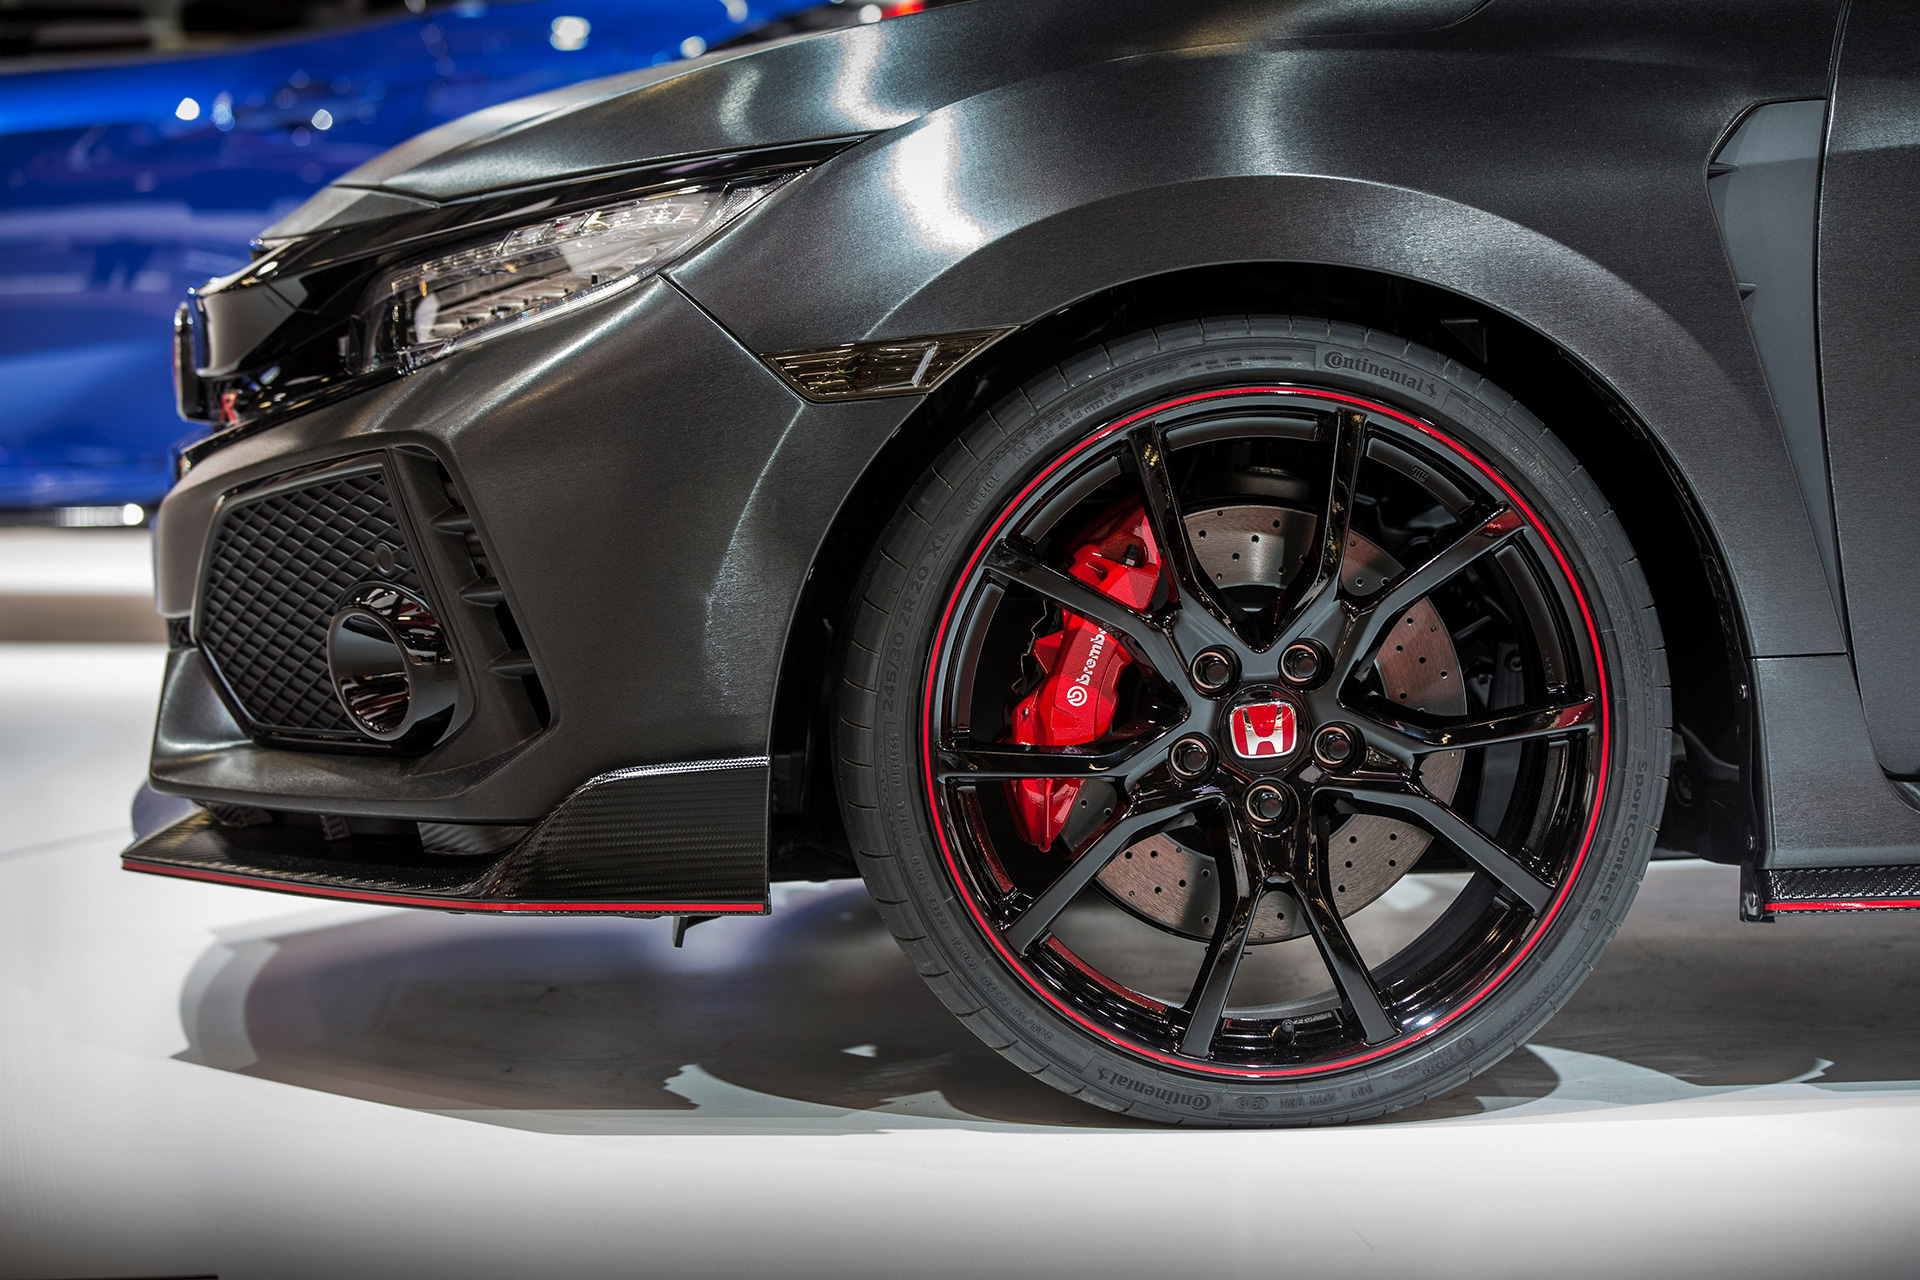 2017 Civic Type R Wheel With Brembo Brakes